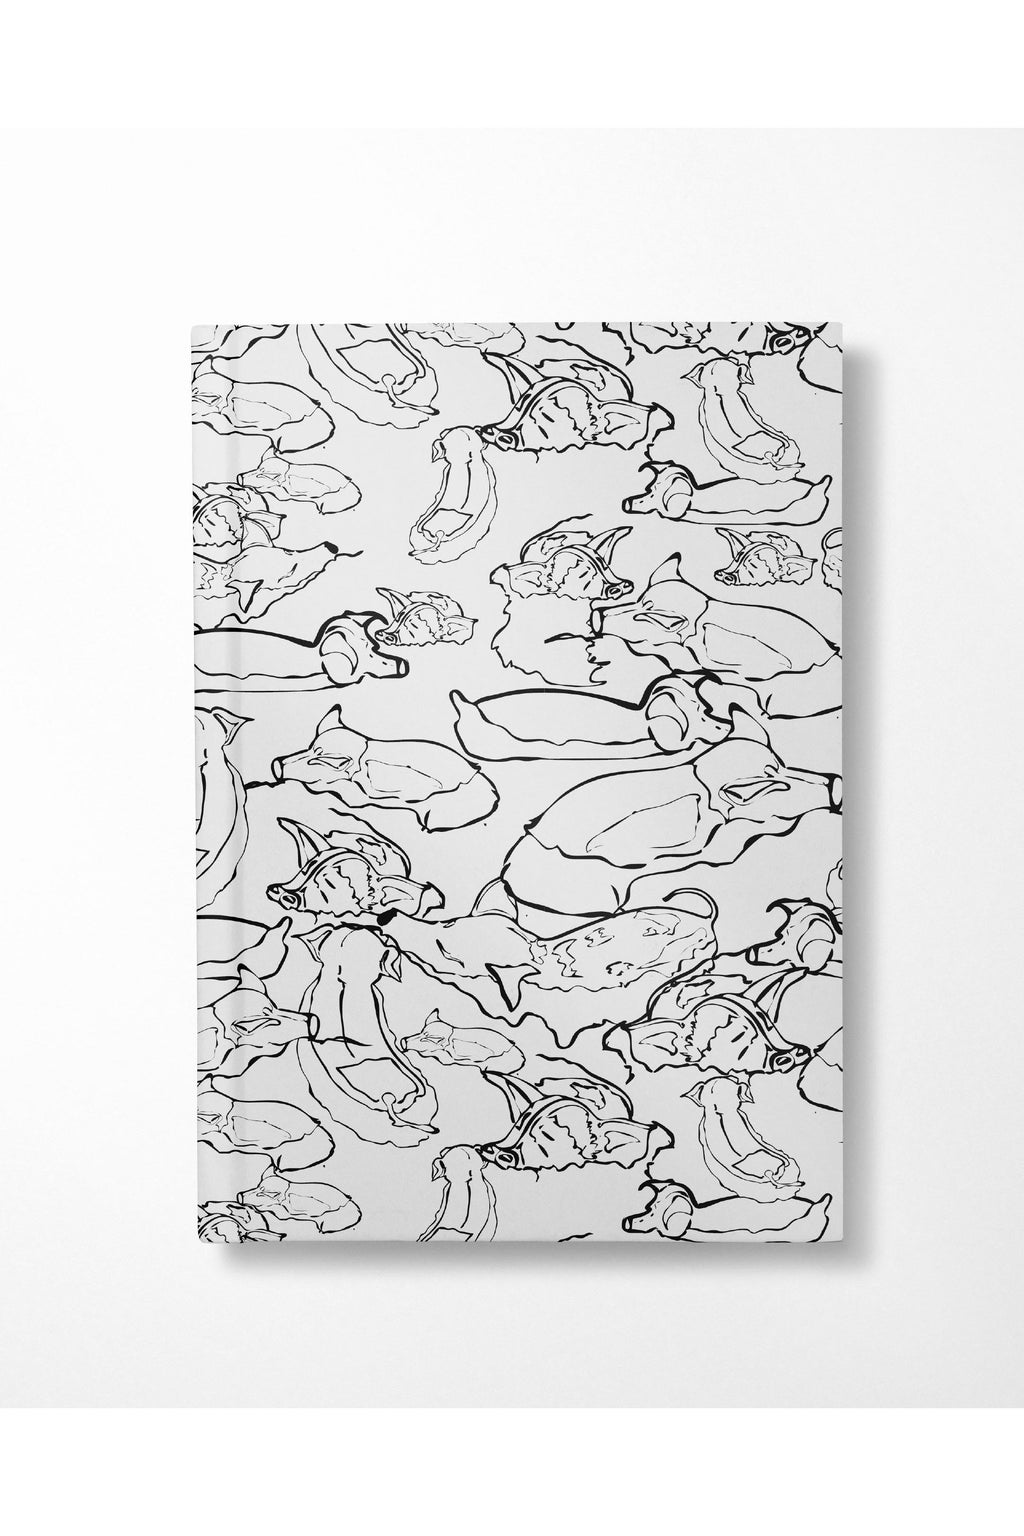 Swimming With The Pigs Notebook - White - Hausofassembly